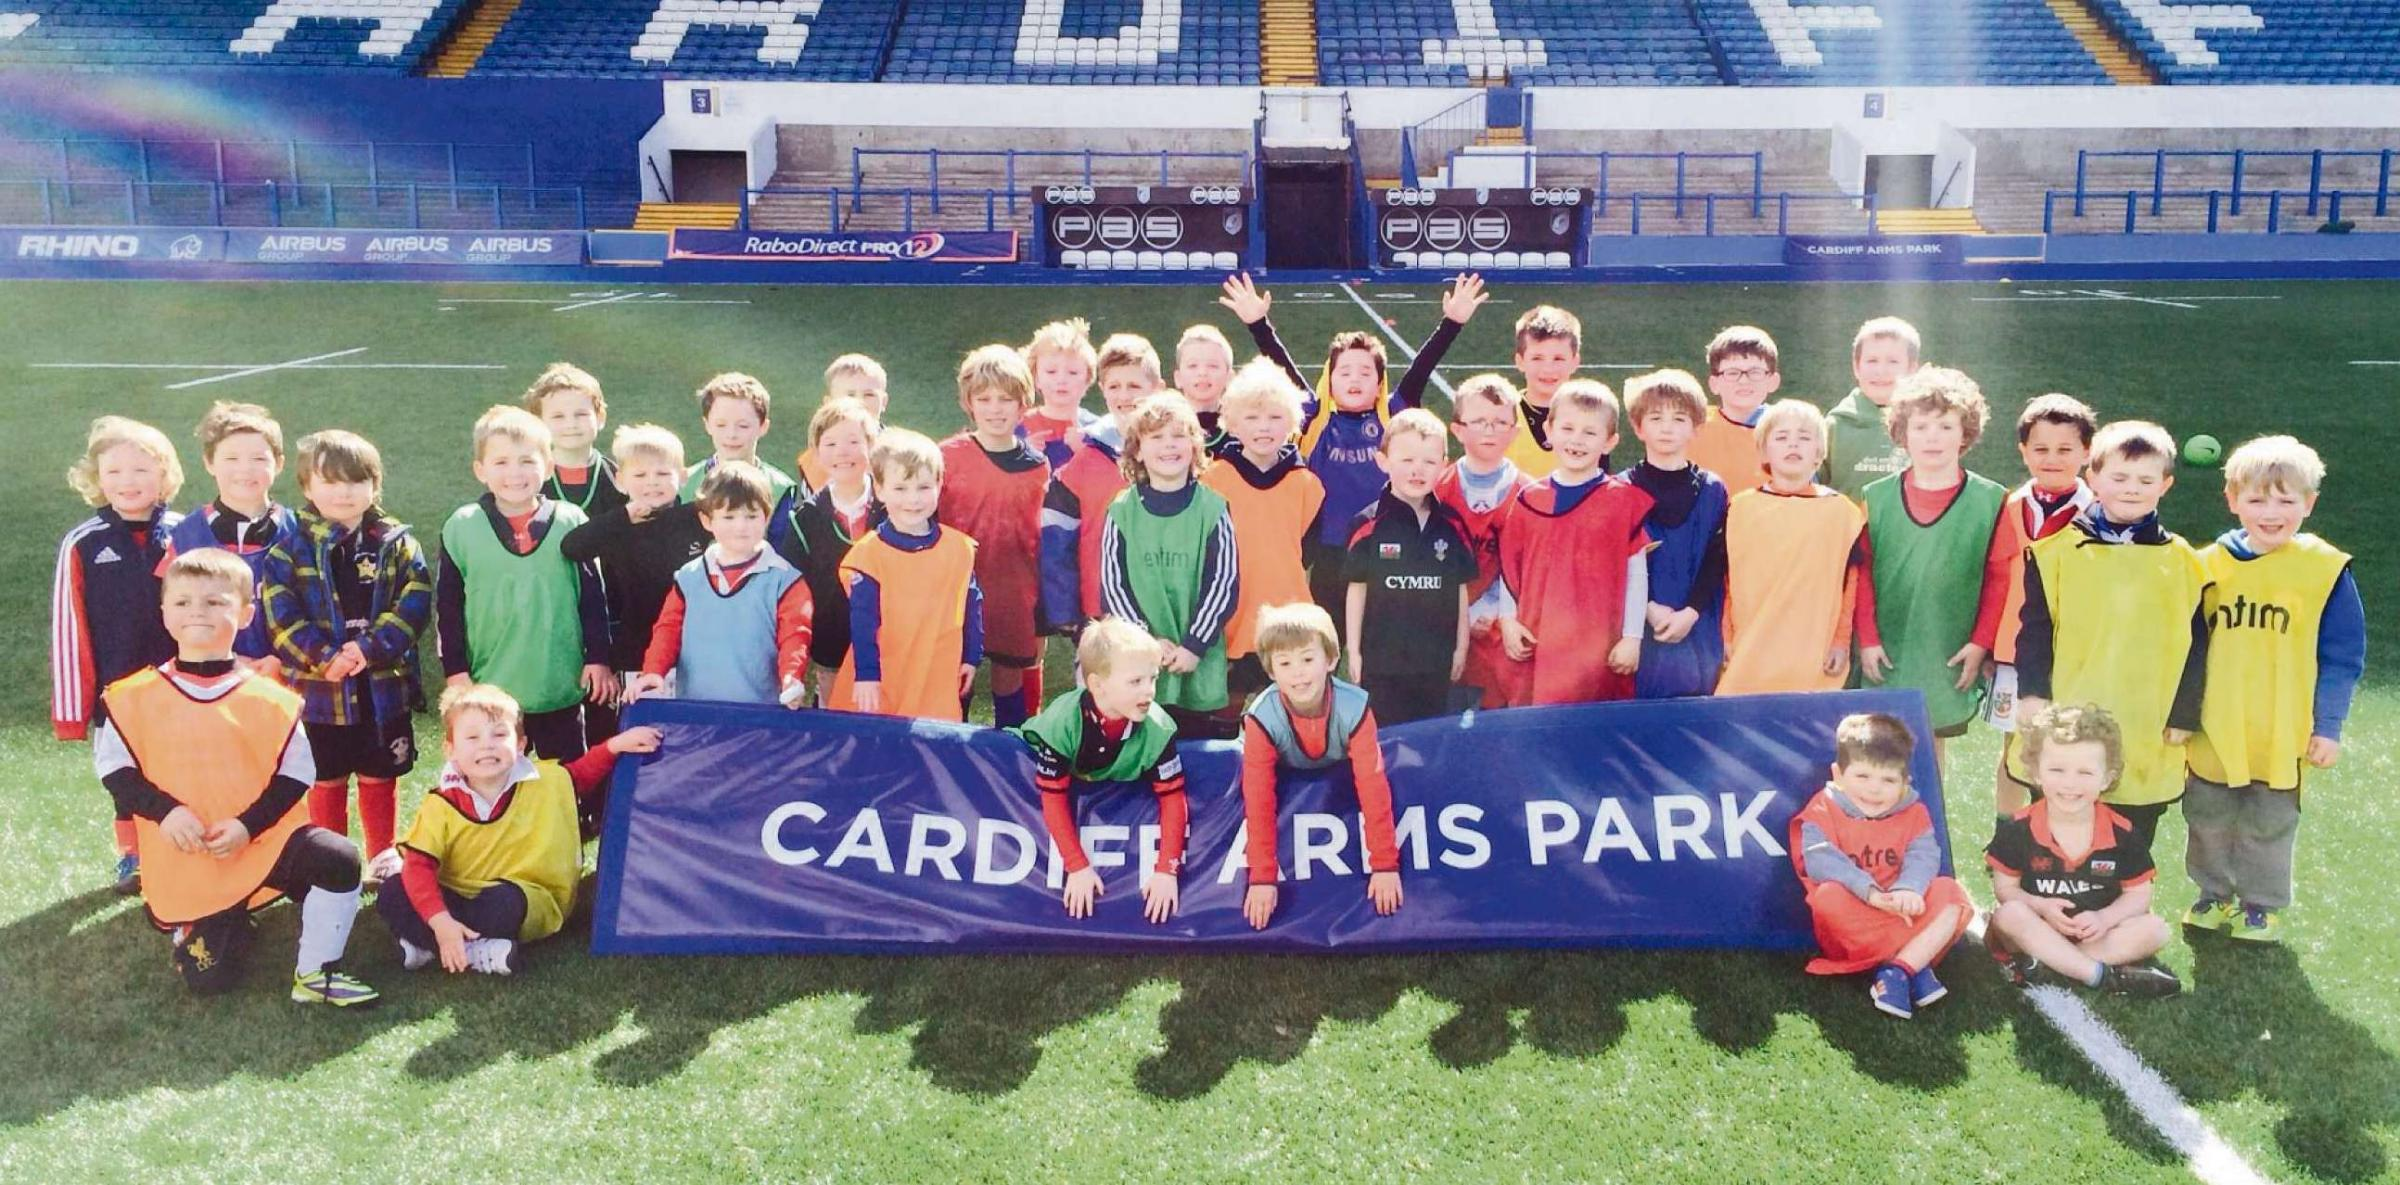 SPORTS DAY: A number of children from the Vale of Glamorgan took part in a unique sporting opportunity at Cardiff Arms Park when they were coached in rugby and football skills.